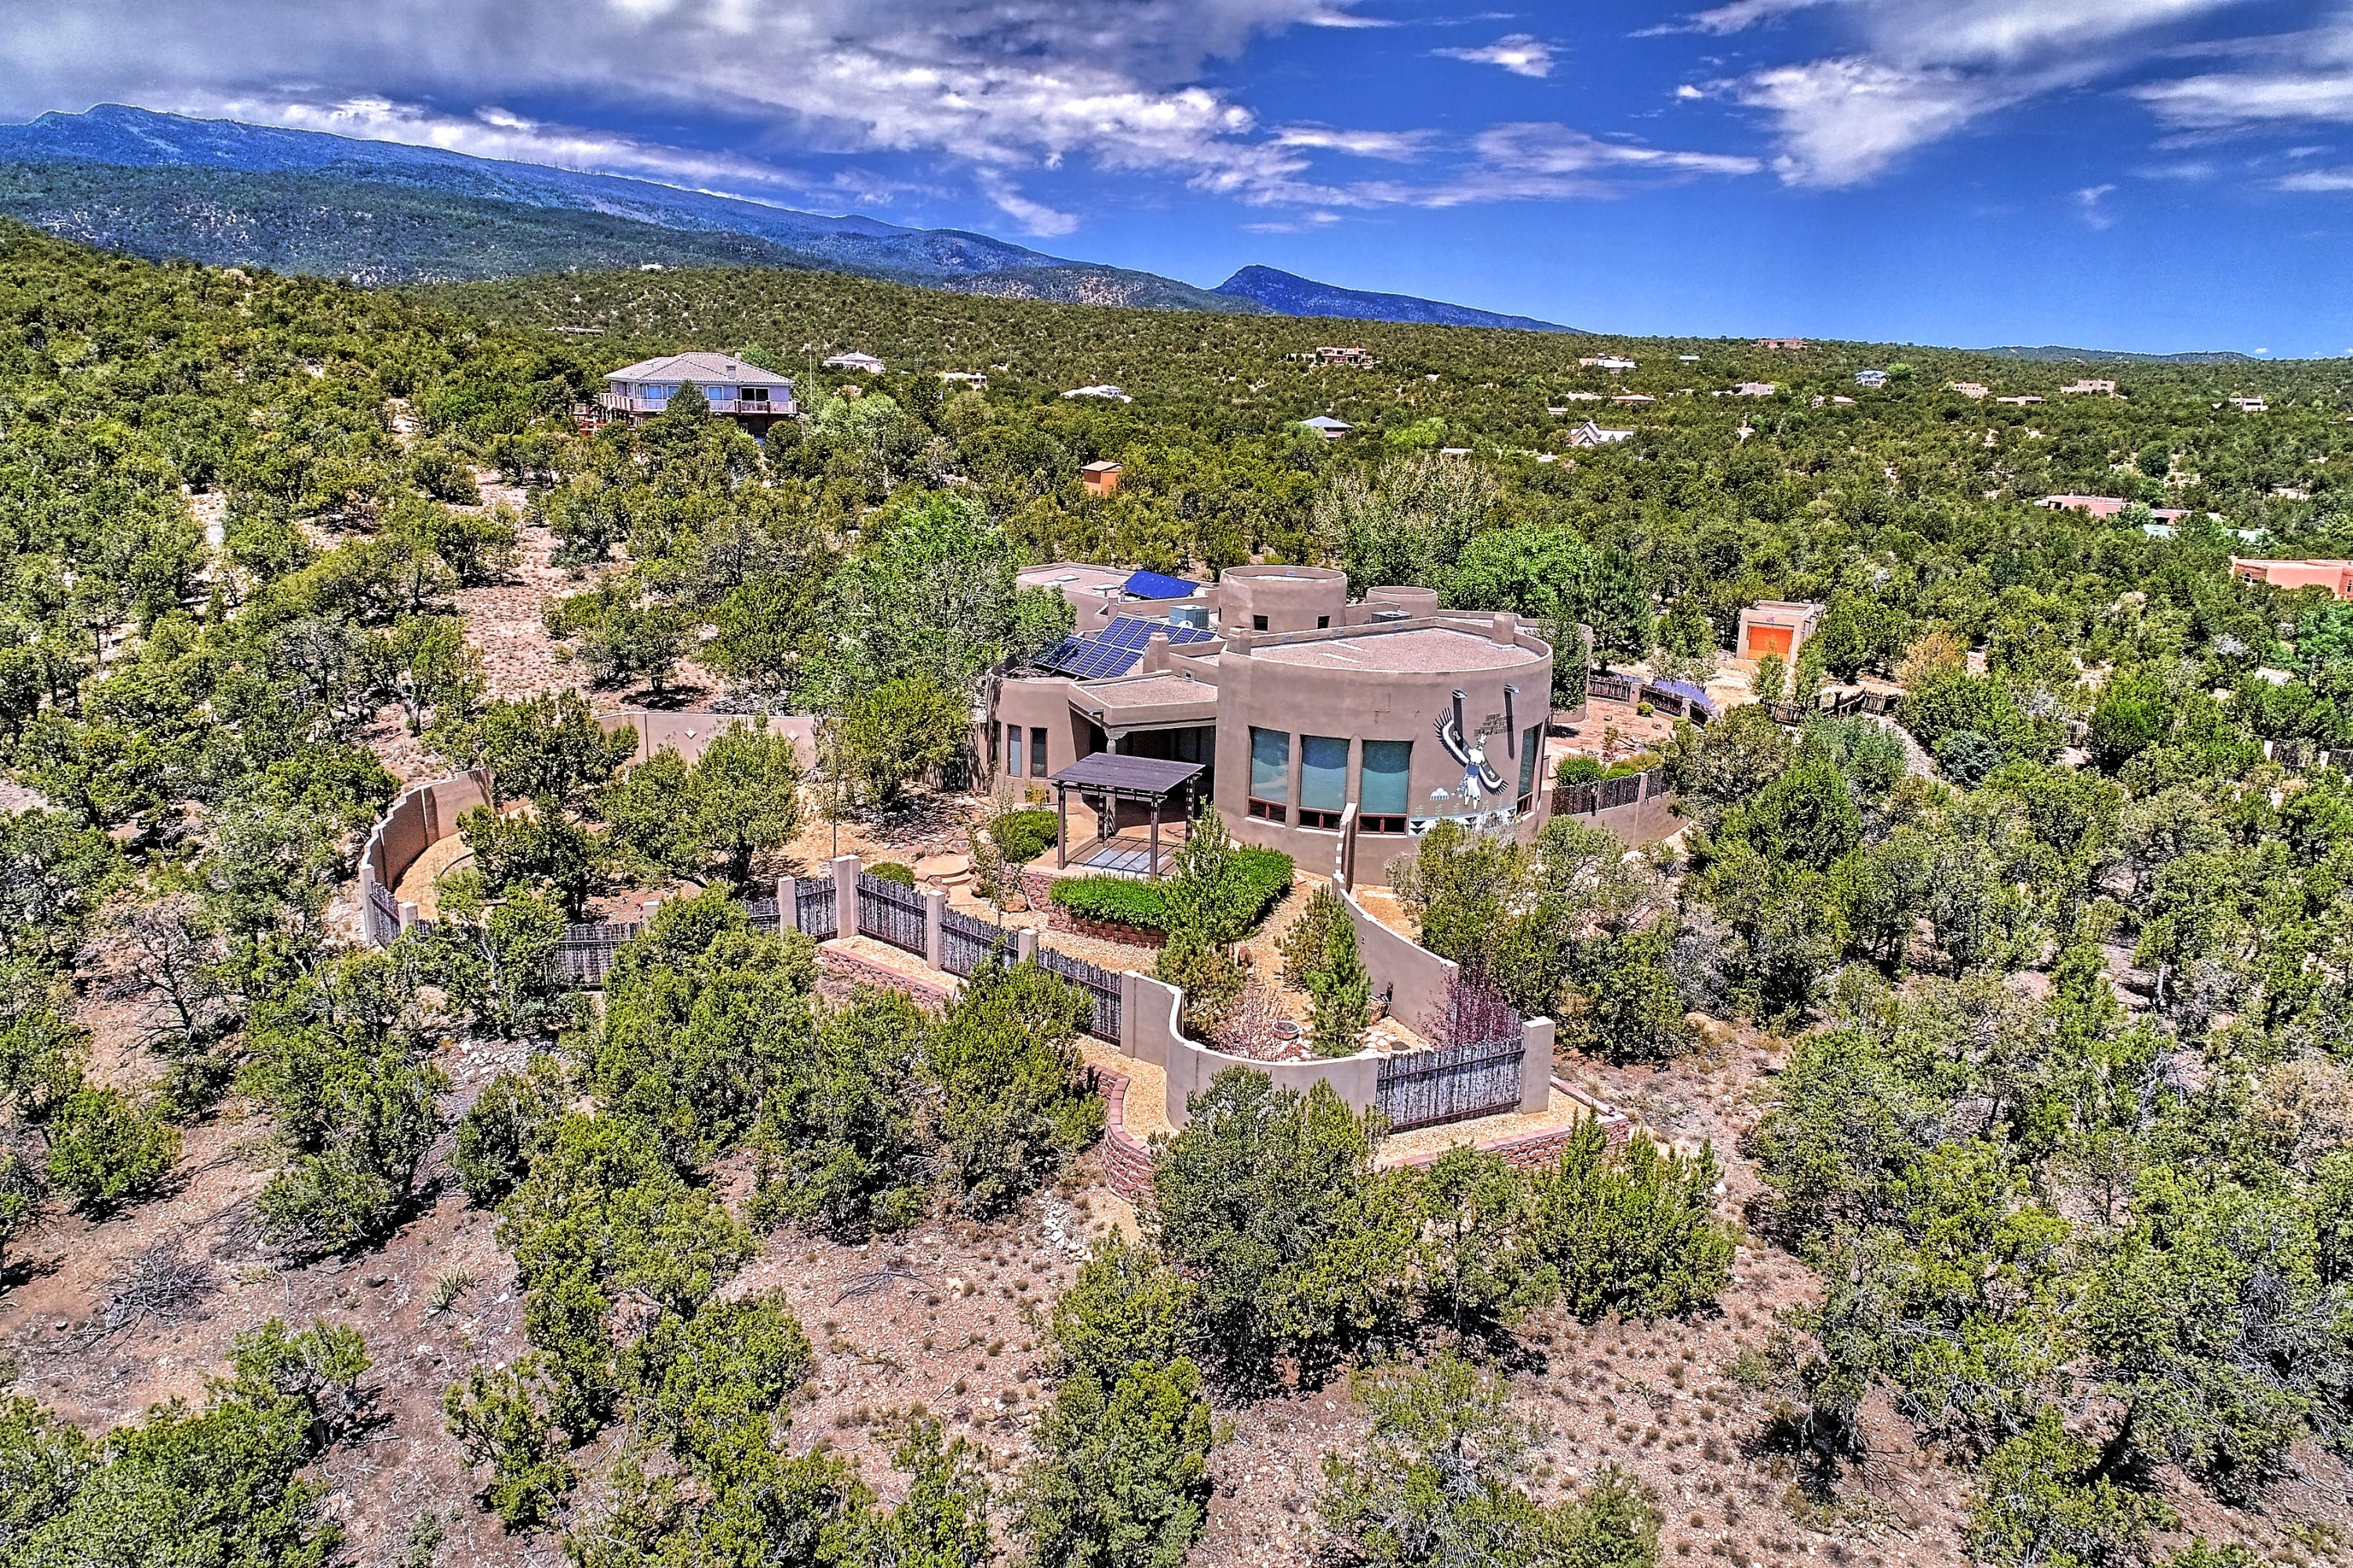 EXCEPTIONAL Home in Paa-ko, perfectly positioned to take advantage of the dramatic views of the Ortiz and Sangre de Cristo Mountains! Beautifully landscaped & inviting courtyard lures you inside to the grand foyer w/ soaring viga spoked ceiling, arched entry's, & tile mosaic. Chef's Kitchen features a 6-burner WOLF range, Sub-zero fridge, & double-ovens. Spacious great room with 2 living spaces, spectacular views from the floor to ceiling windows and wagon wheel spoked ceiling, 3 kivas, nichos, adobe accents, hand-painted light fixtures.. Amazing outdoor living spaces offer the perfect setting for entertaining or star gazing on one of the many patios and sitting areas, with outdoor kitchen, patio for hot tub, amazing views and a beautiful water feature! Must see to truly appreciate!